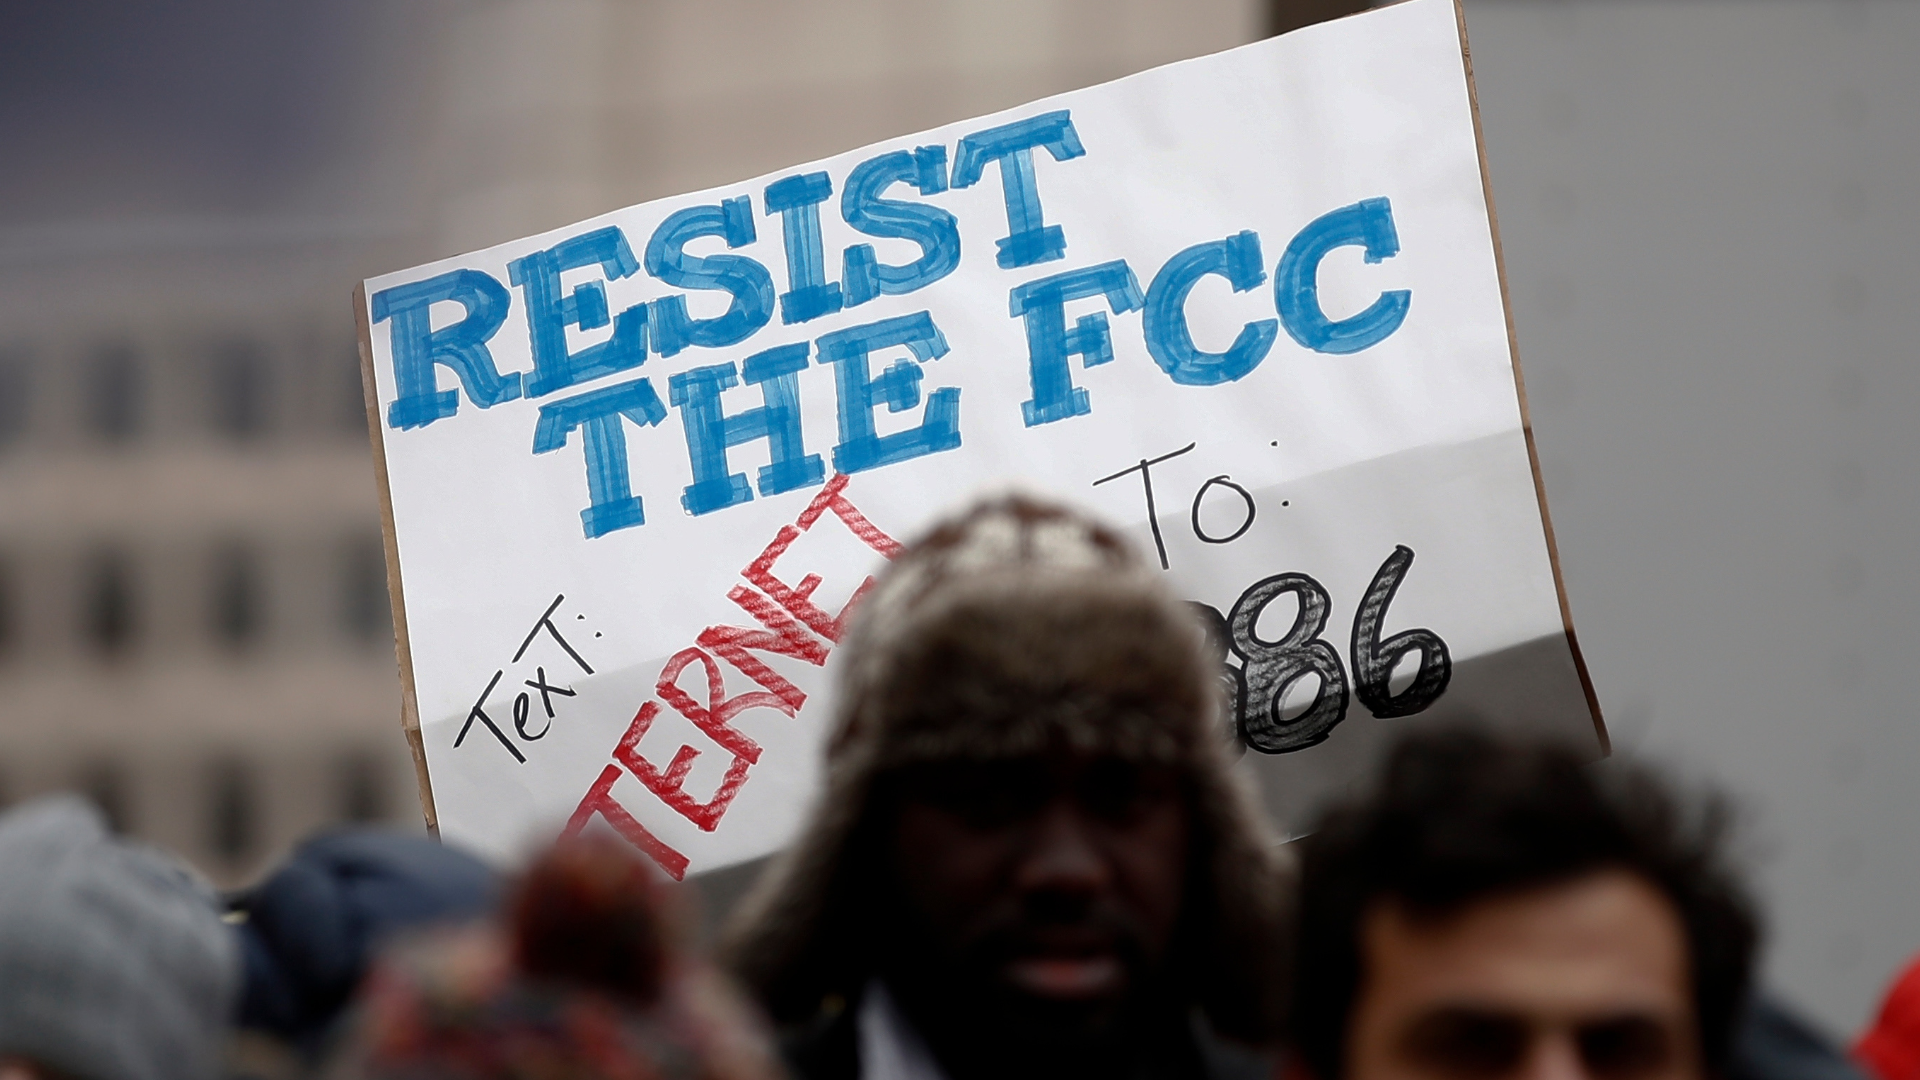 The FCC just voted to repeal its net neutrality rules, in a sweeping act of deregulation